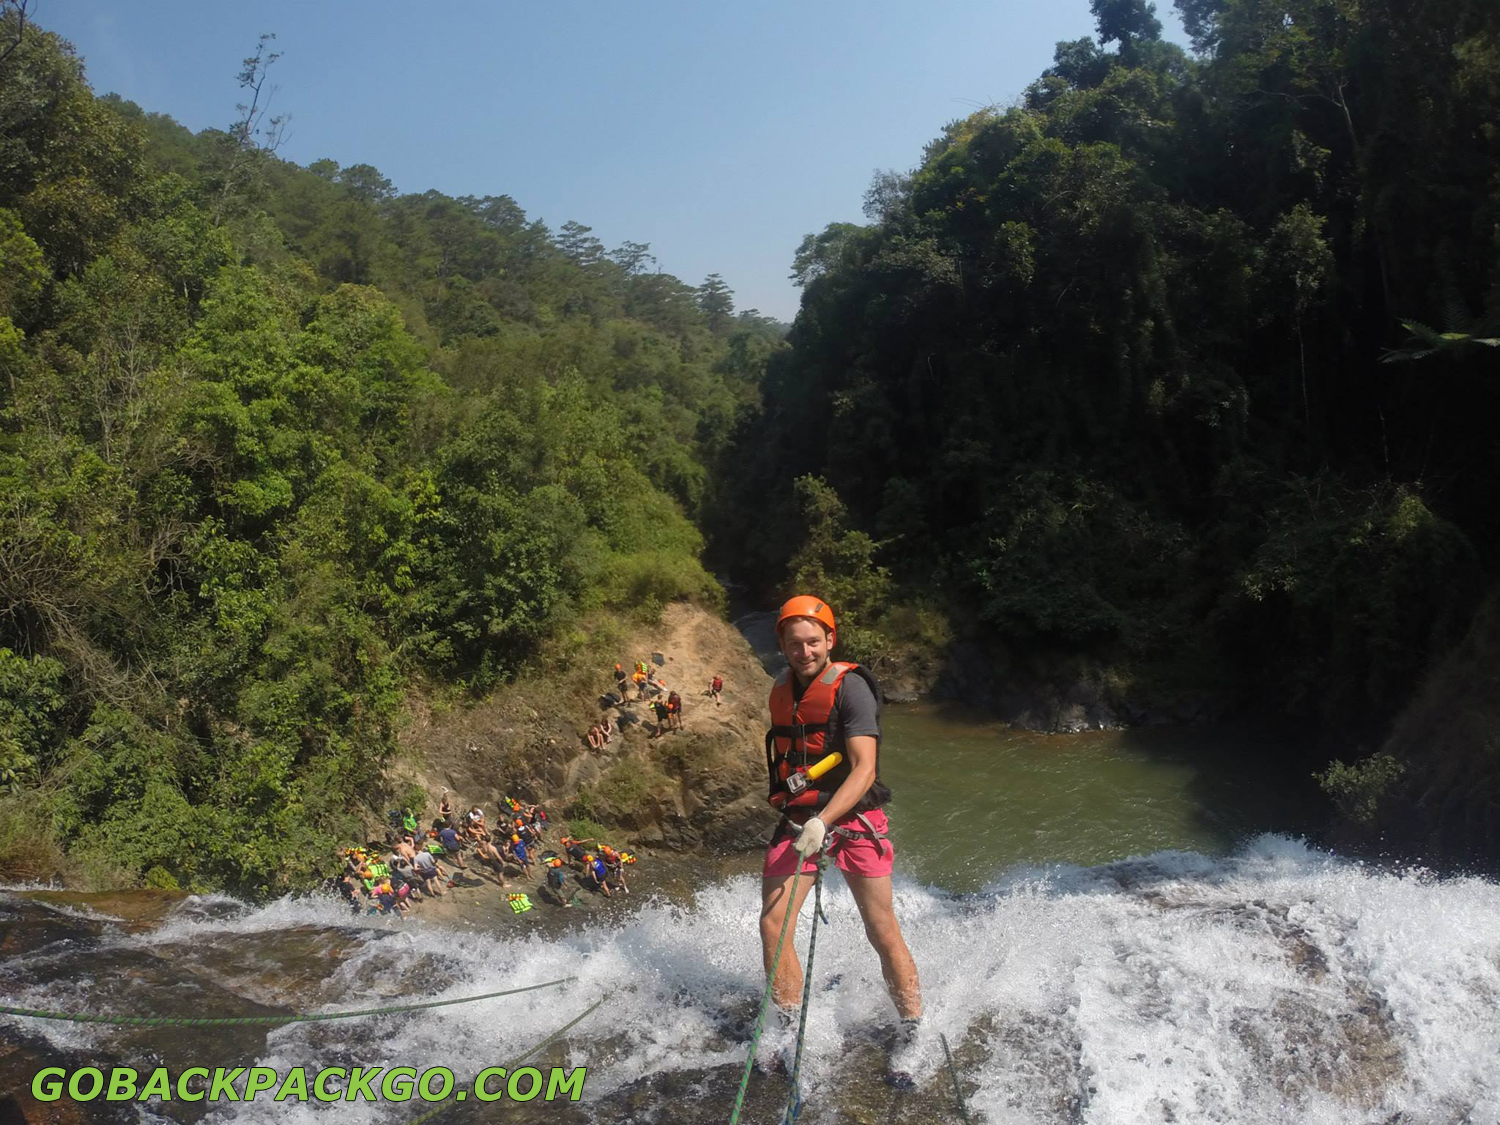 Fashion week Dalat canyoning what to wear for woman